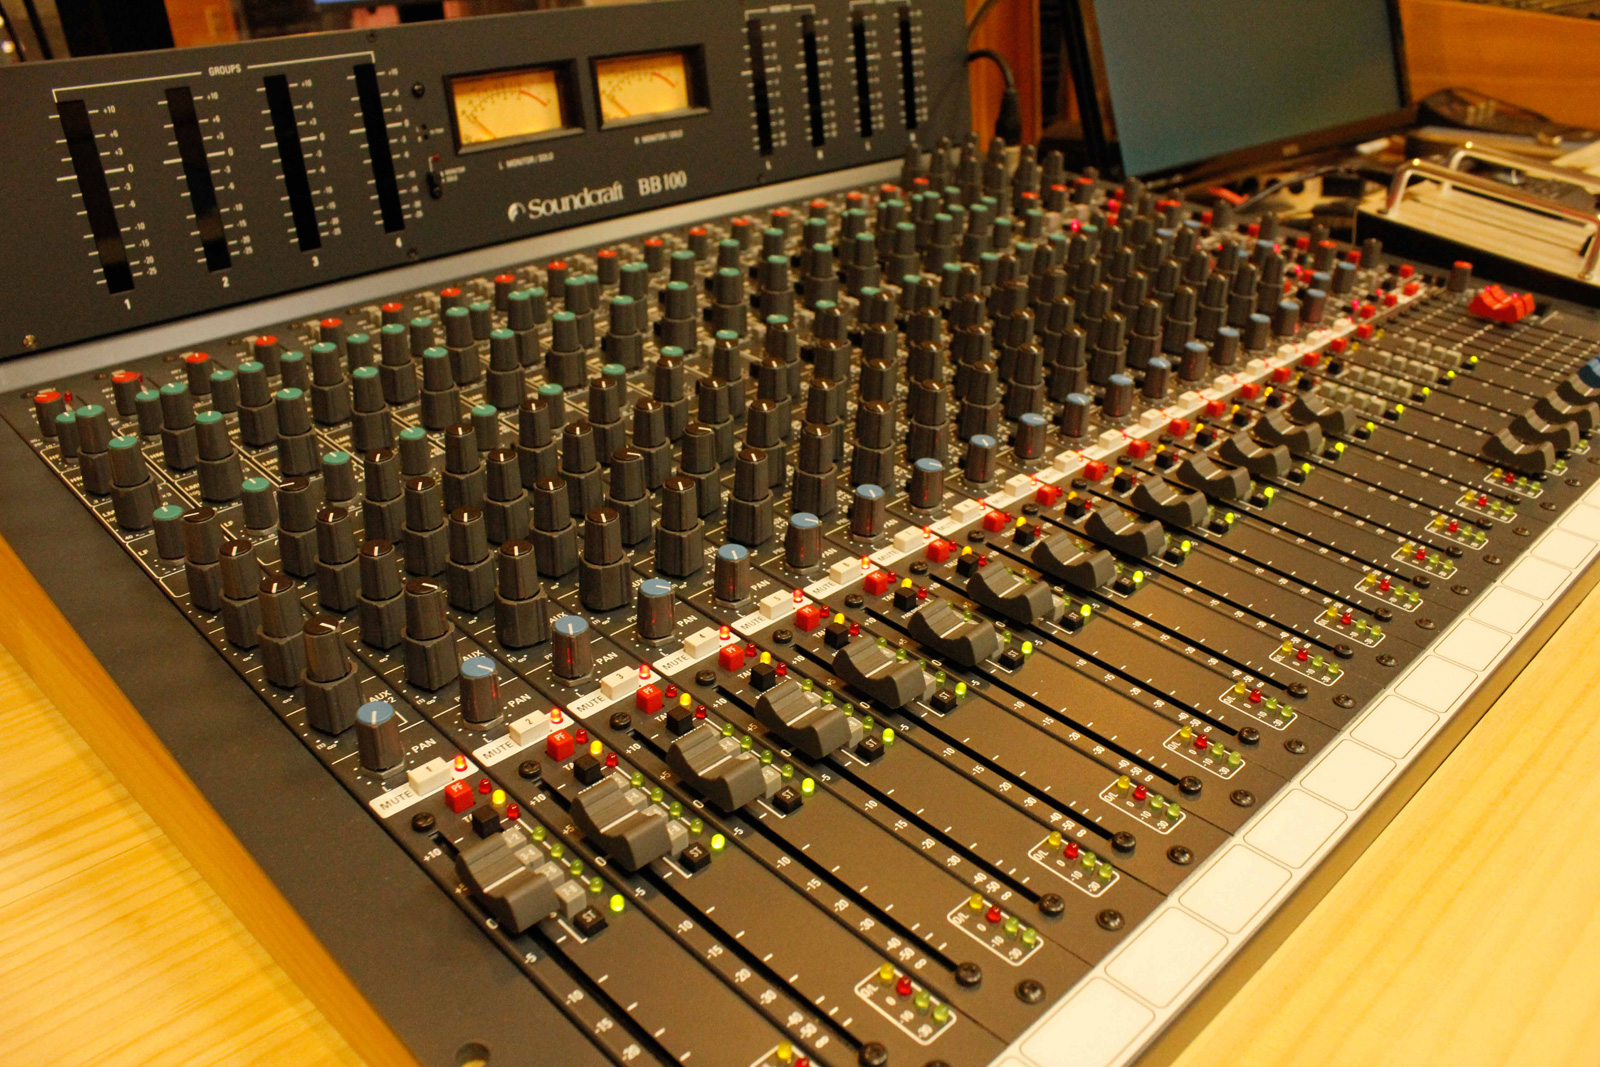 SOUNDCRAFT BB100